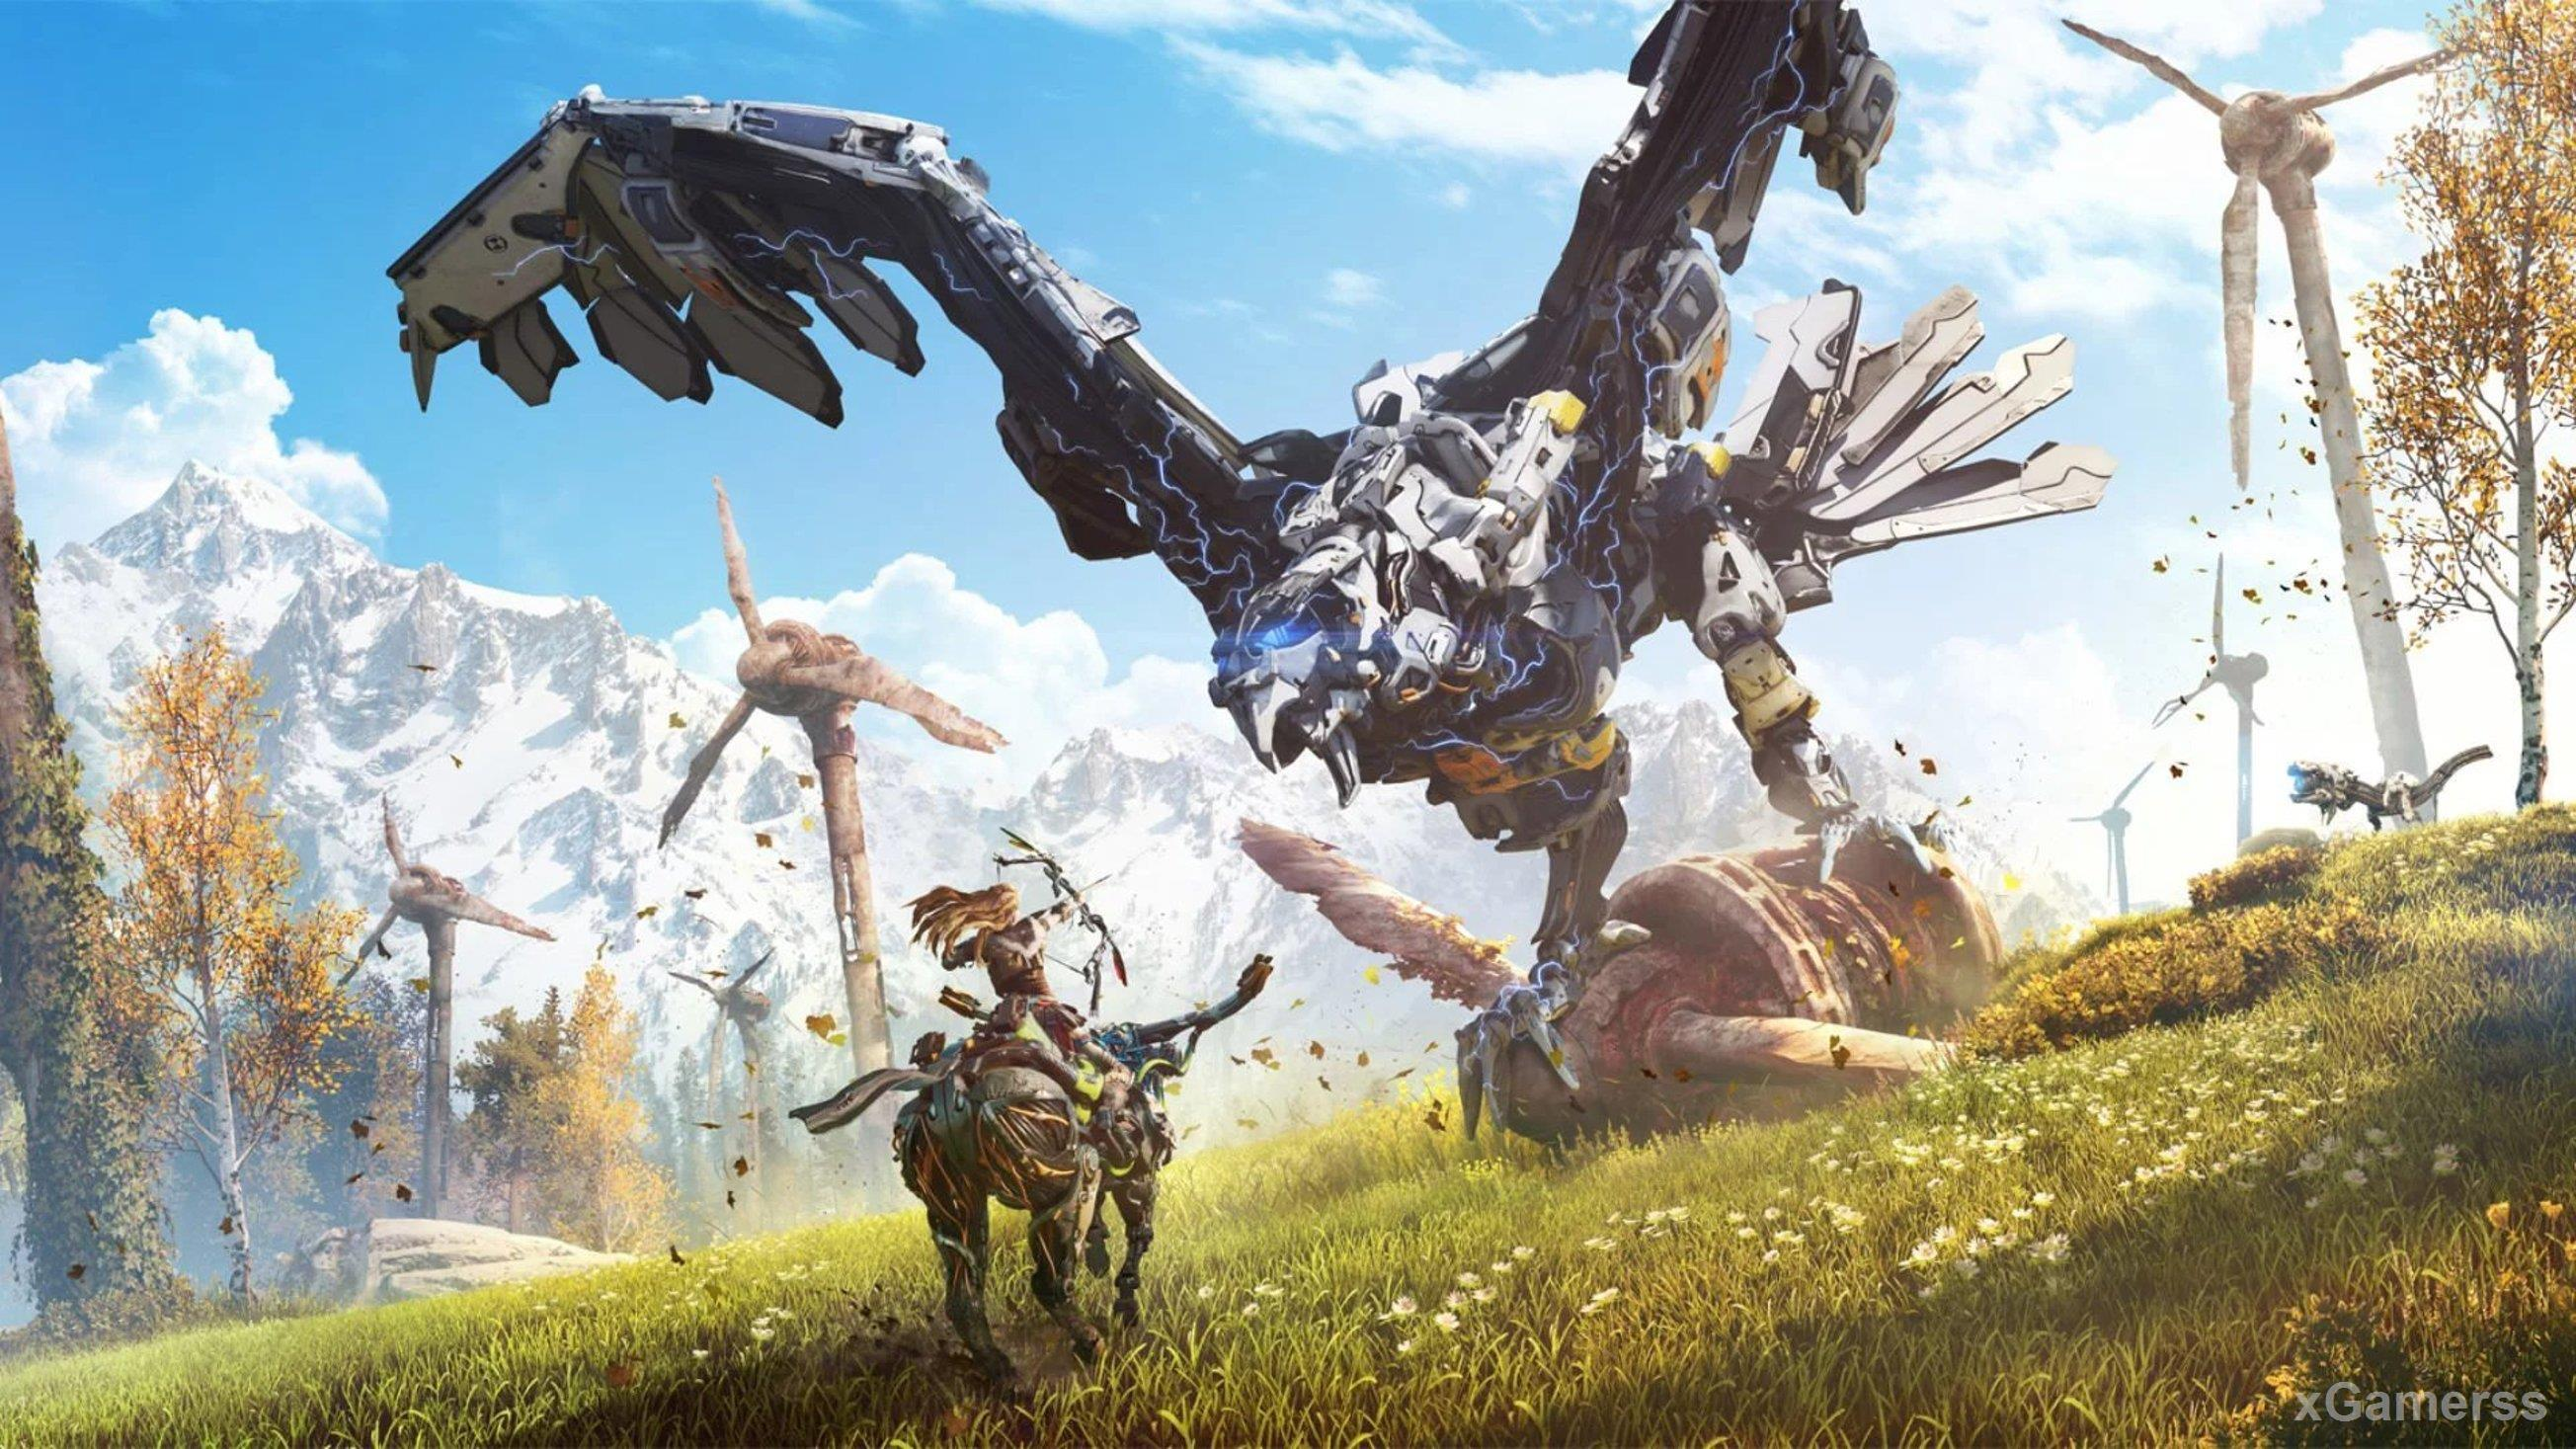 HORIZON ZERO DAWN - Embark on an emotional journey to unravel mysteries of tribal societies